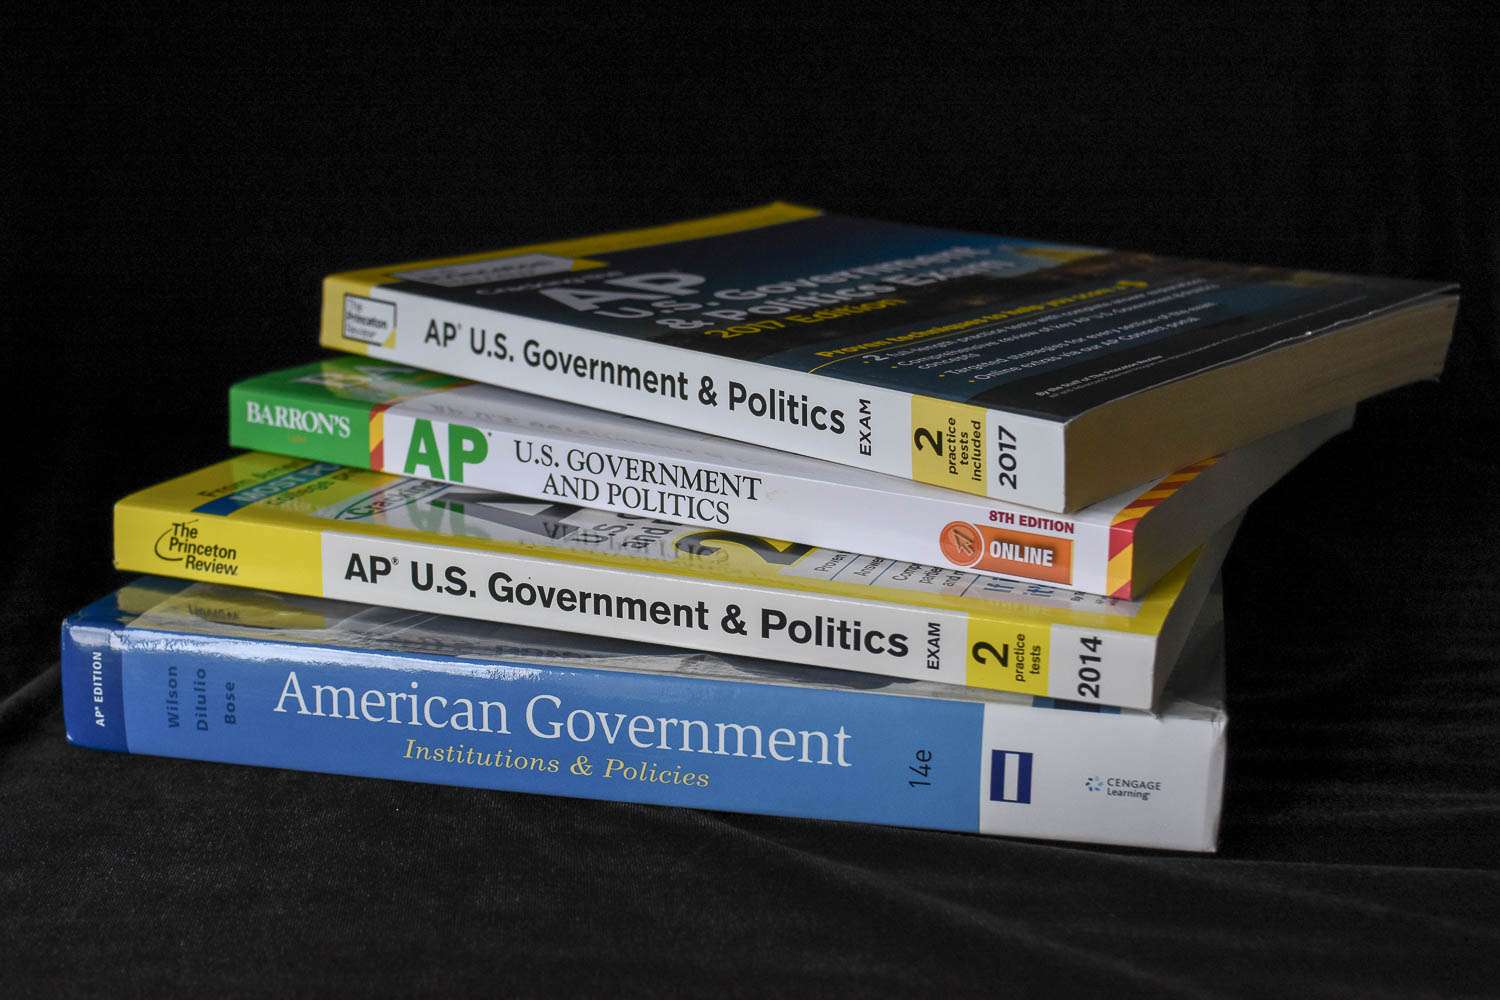 Review guide publishers have not yet printed new books for the AP Gov. redesigned course.